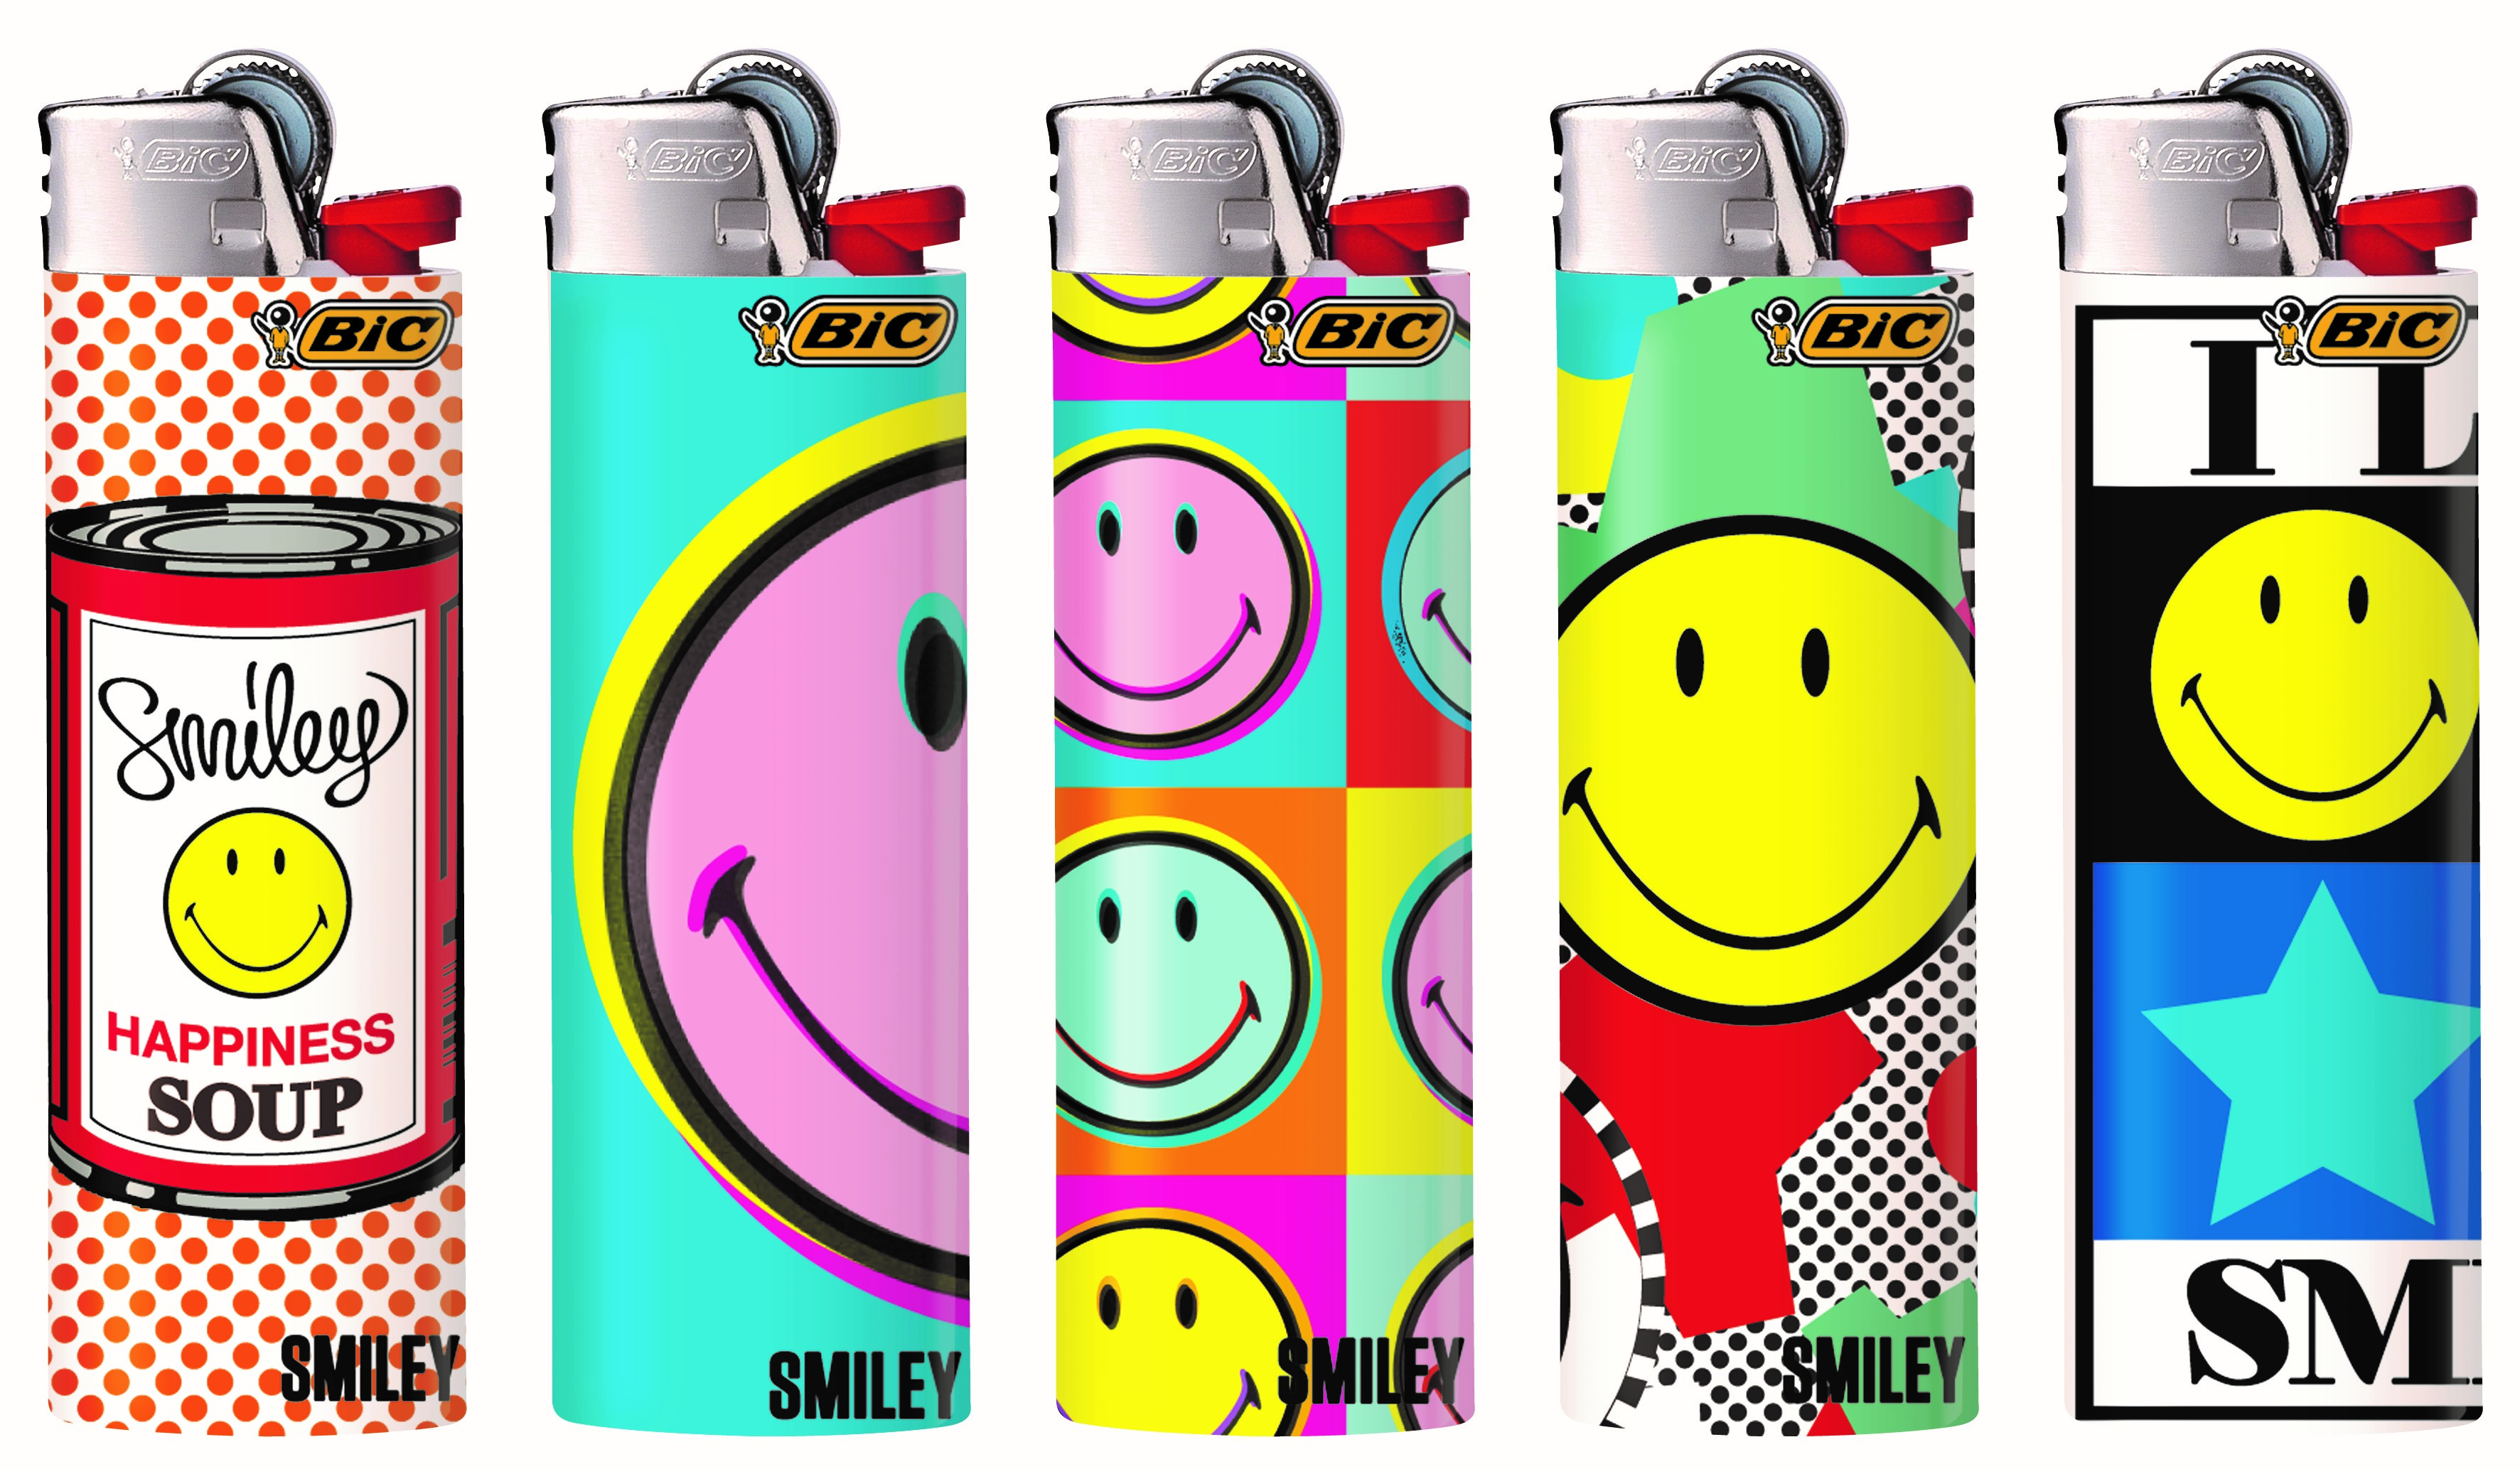 smiley and bic france